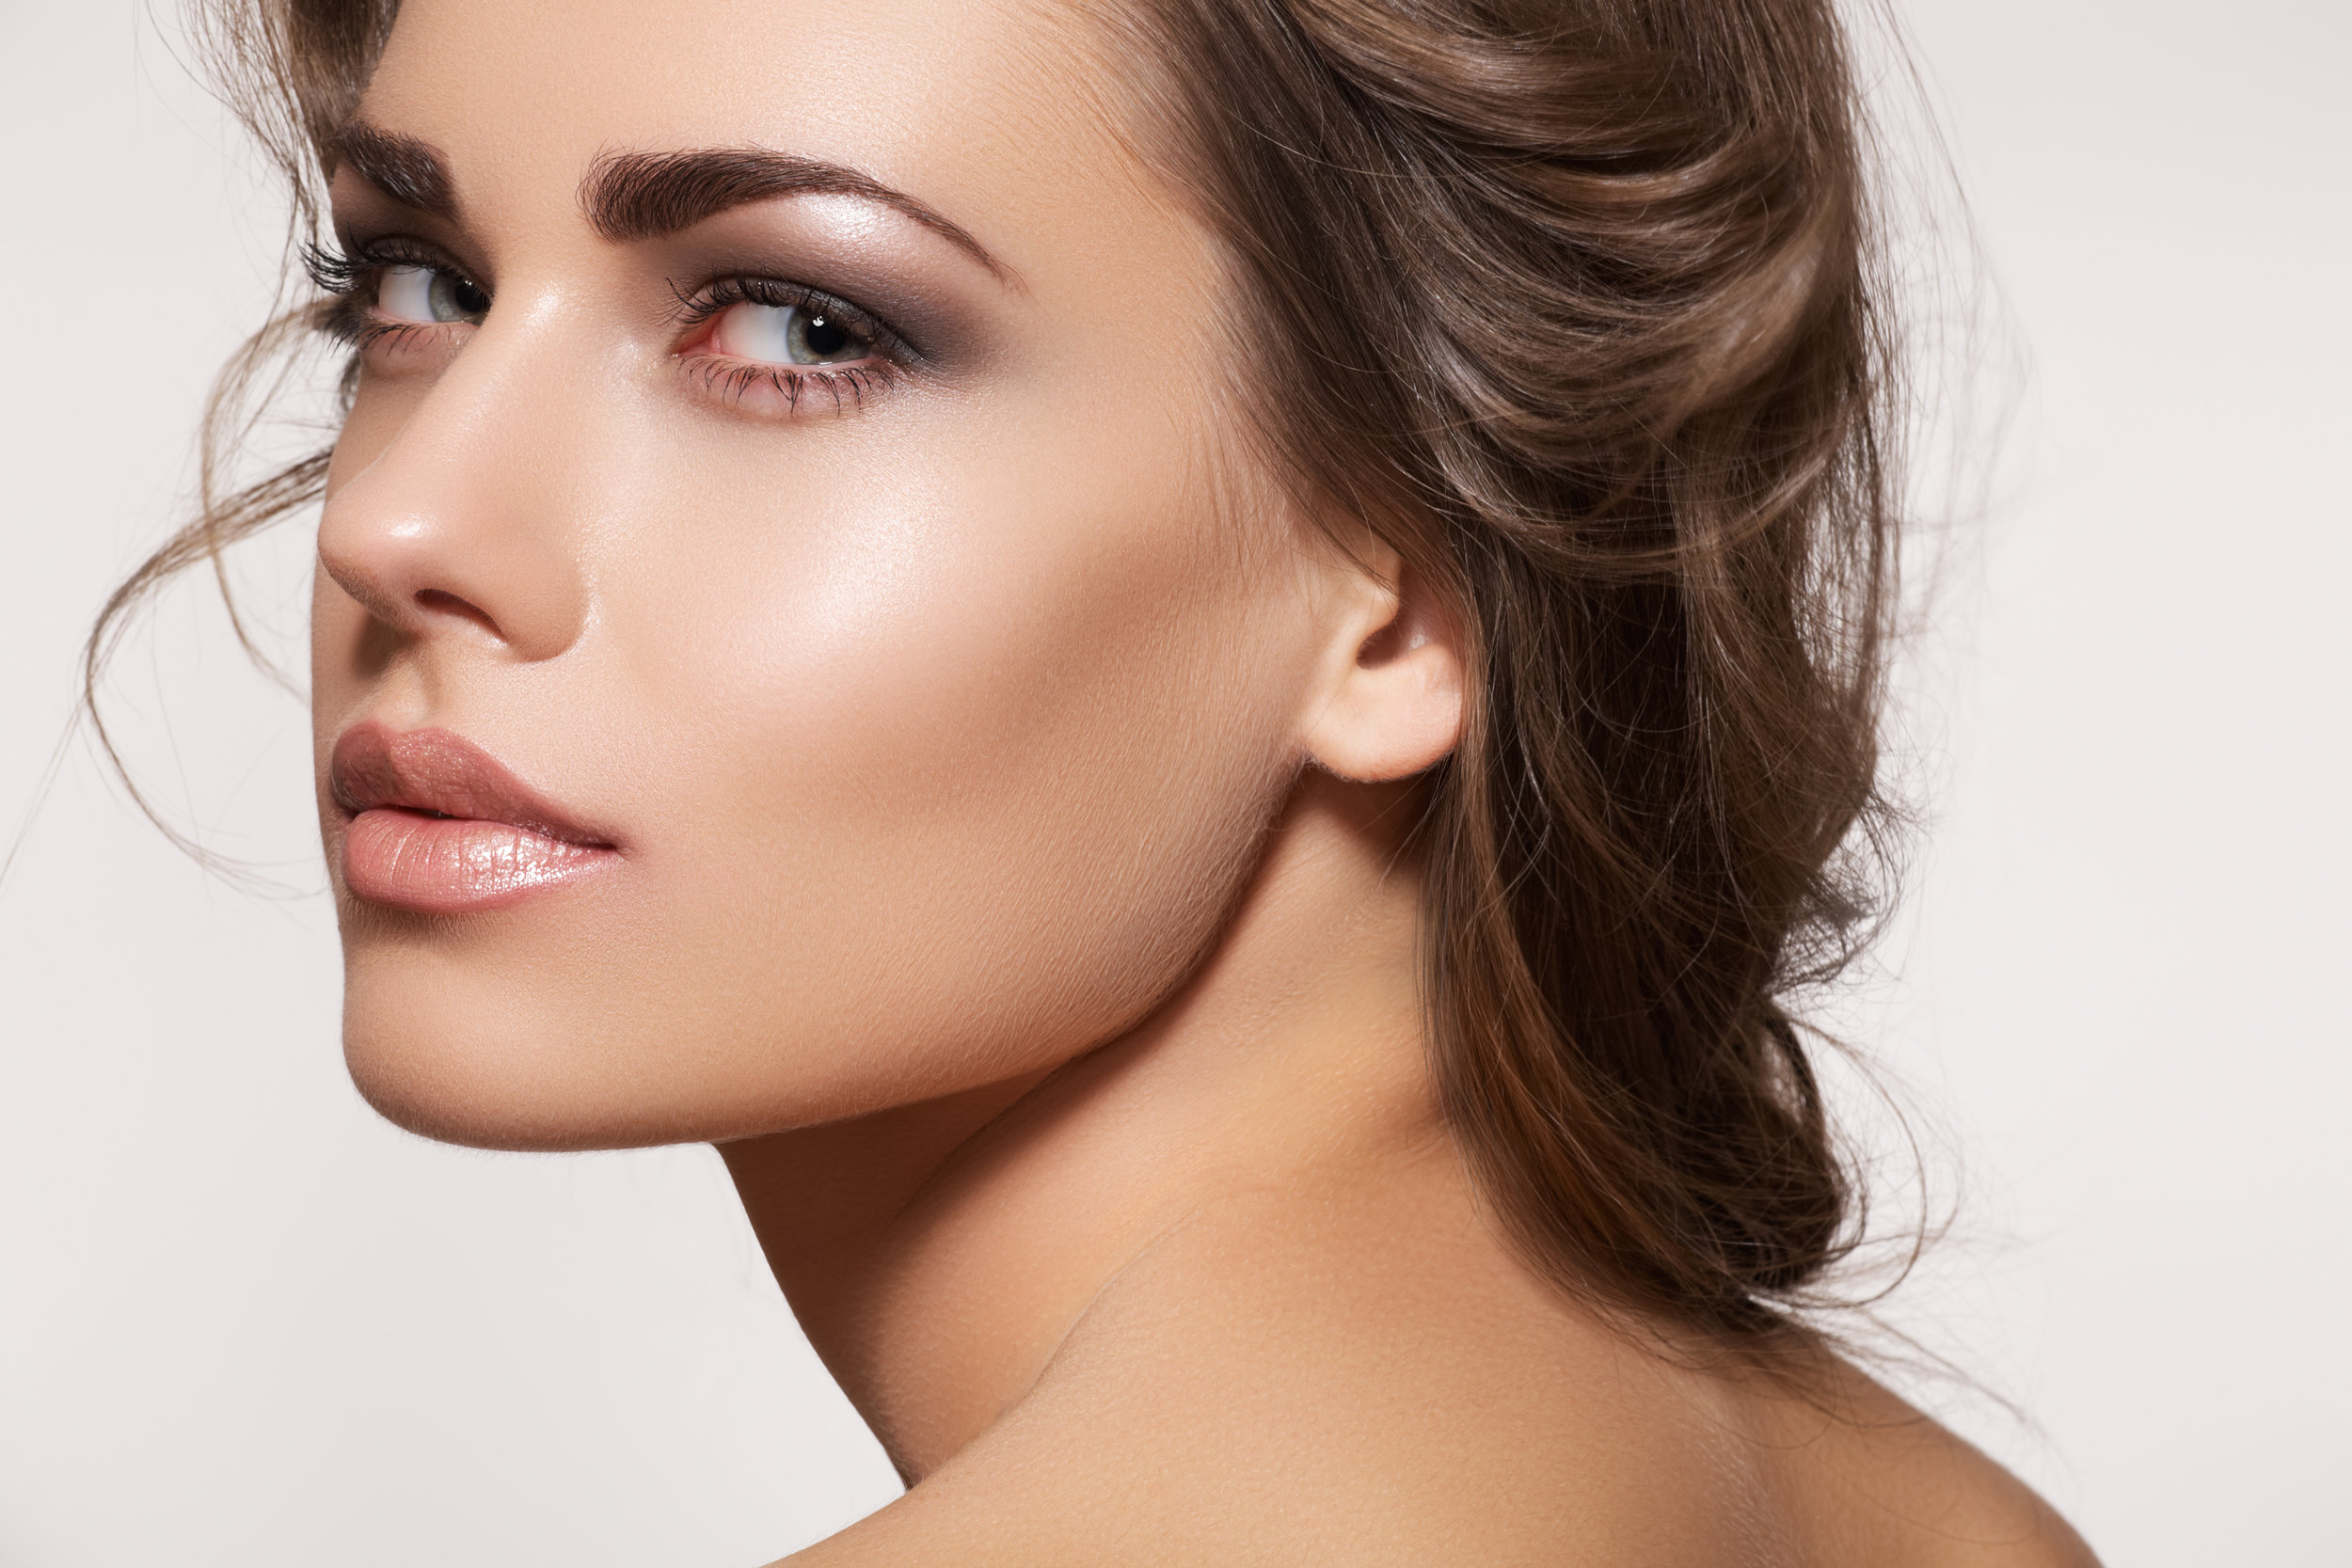 Makeup Application - Providing fashion, style and personalized looks for every day, glamour, and bridal makeup.